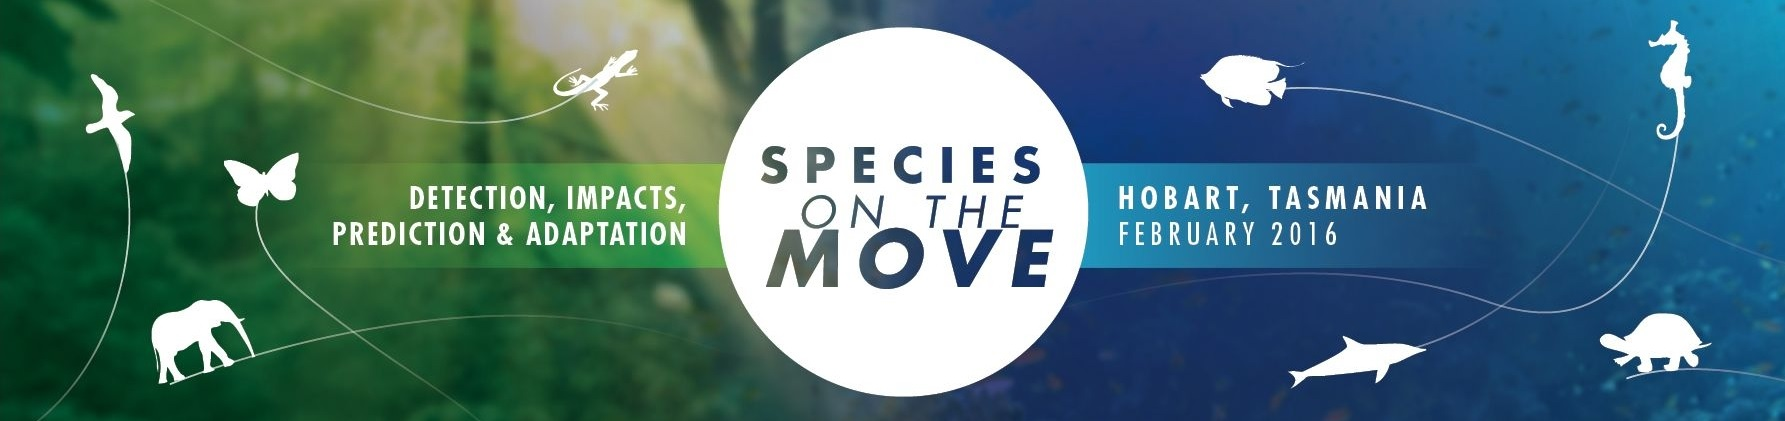 Species on the move conference